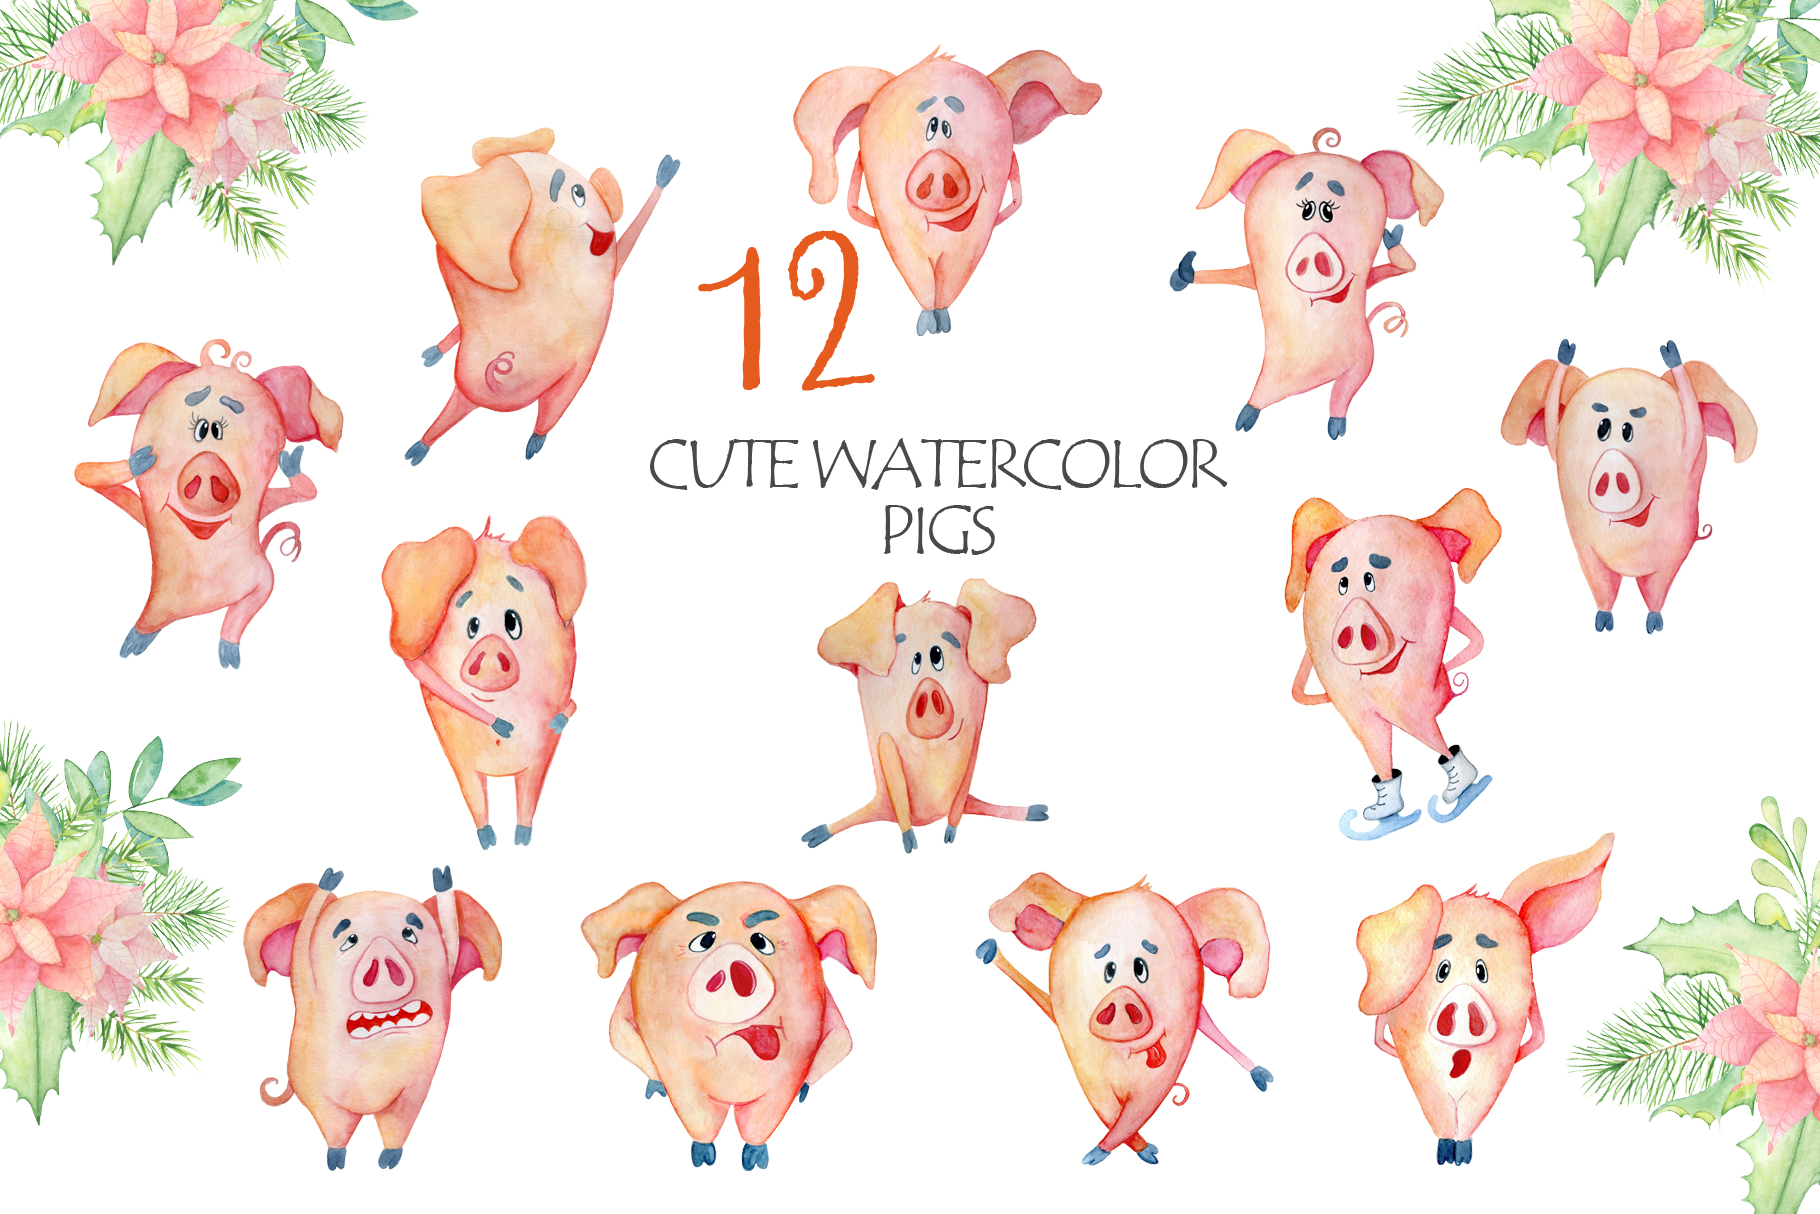 Cute Christmas pigs with decor elements for New Year 2019 example image 2